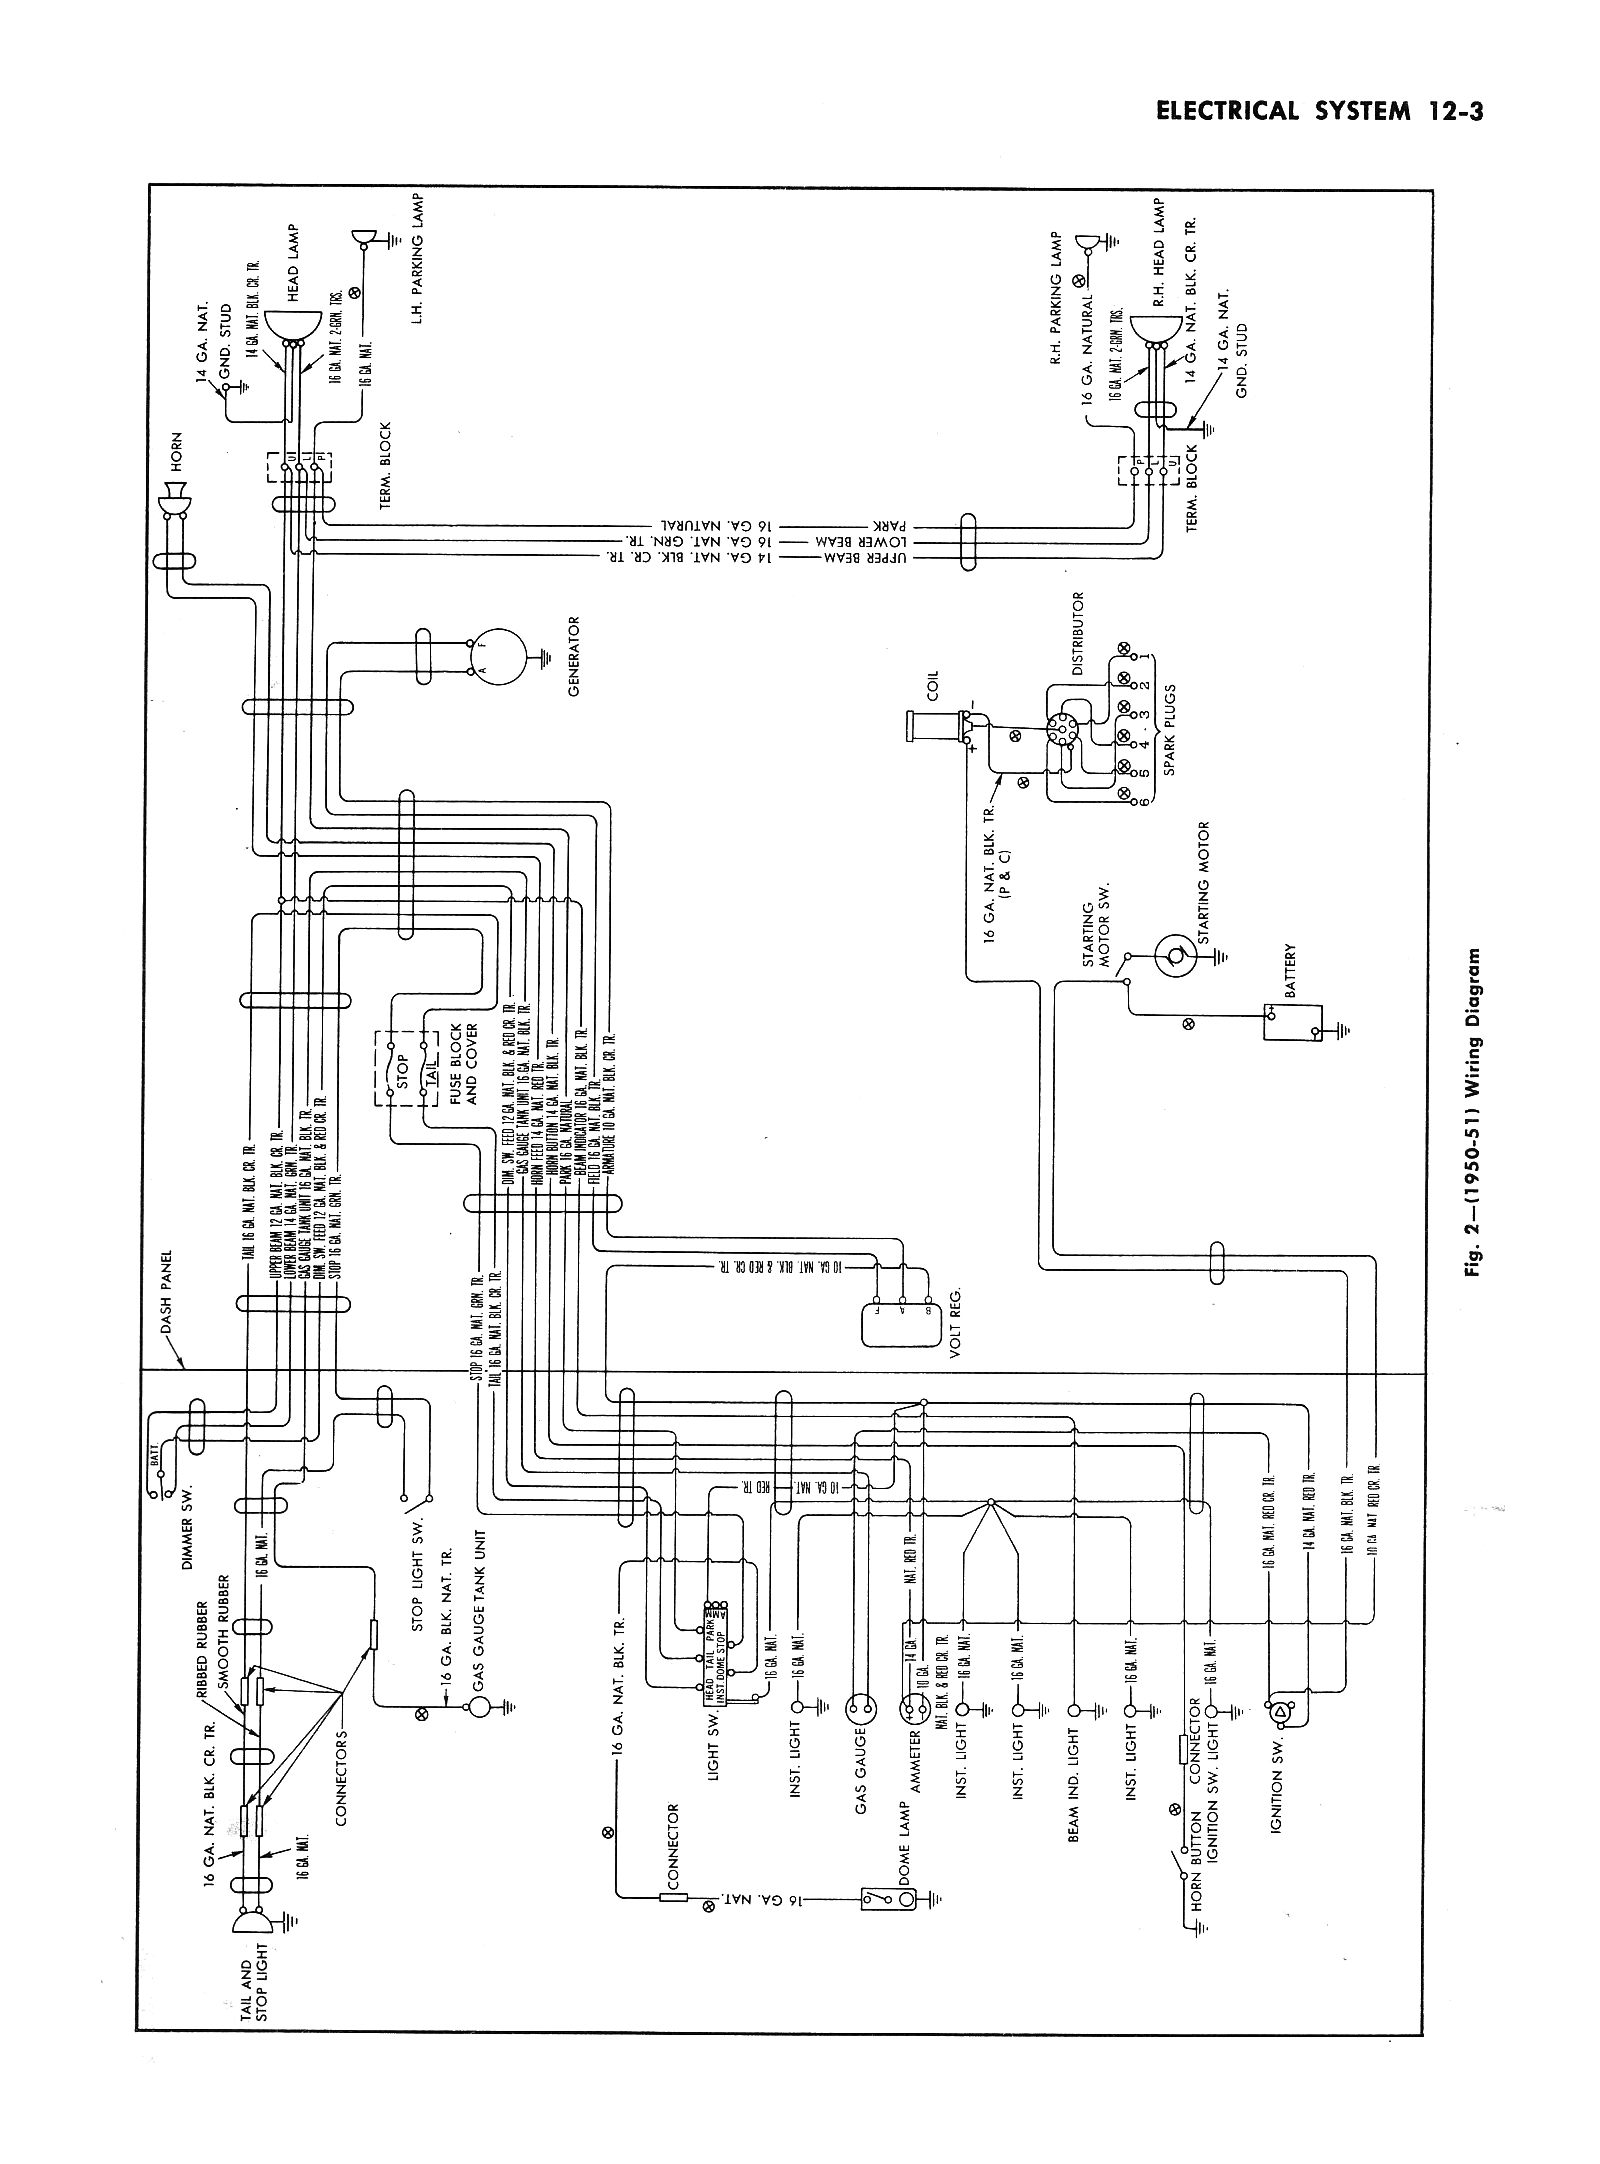 1975 chevy truck wiring harness wiring diagram rh w49 vom winnenthal de